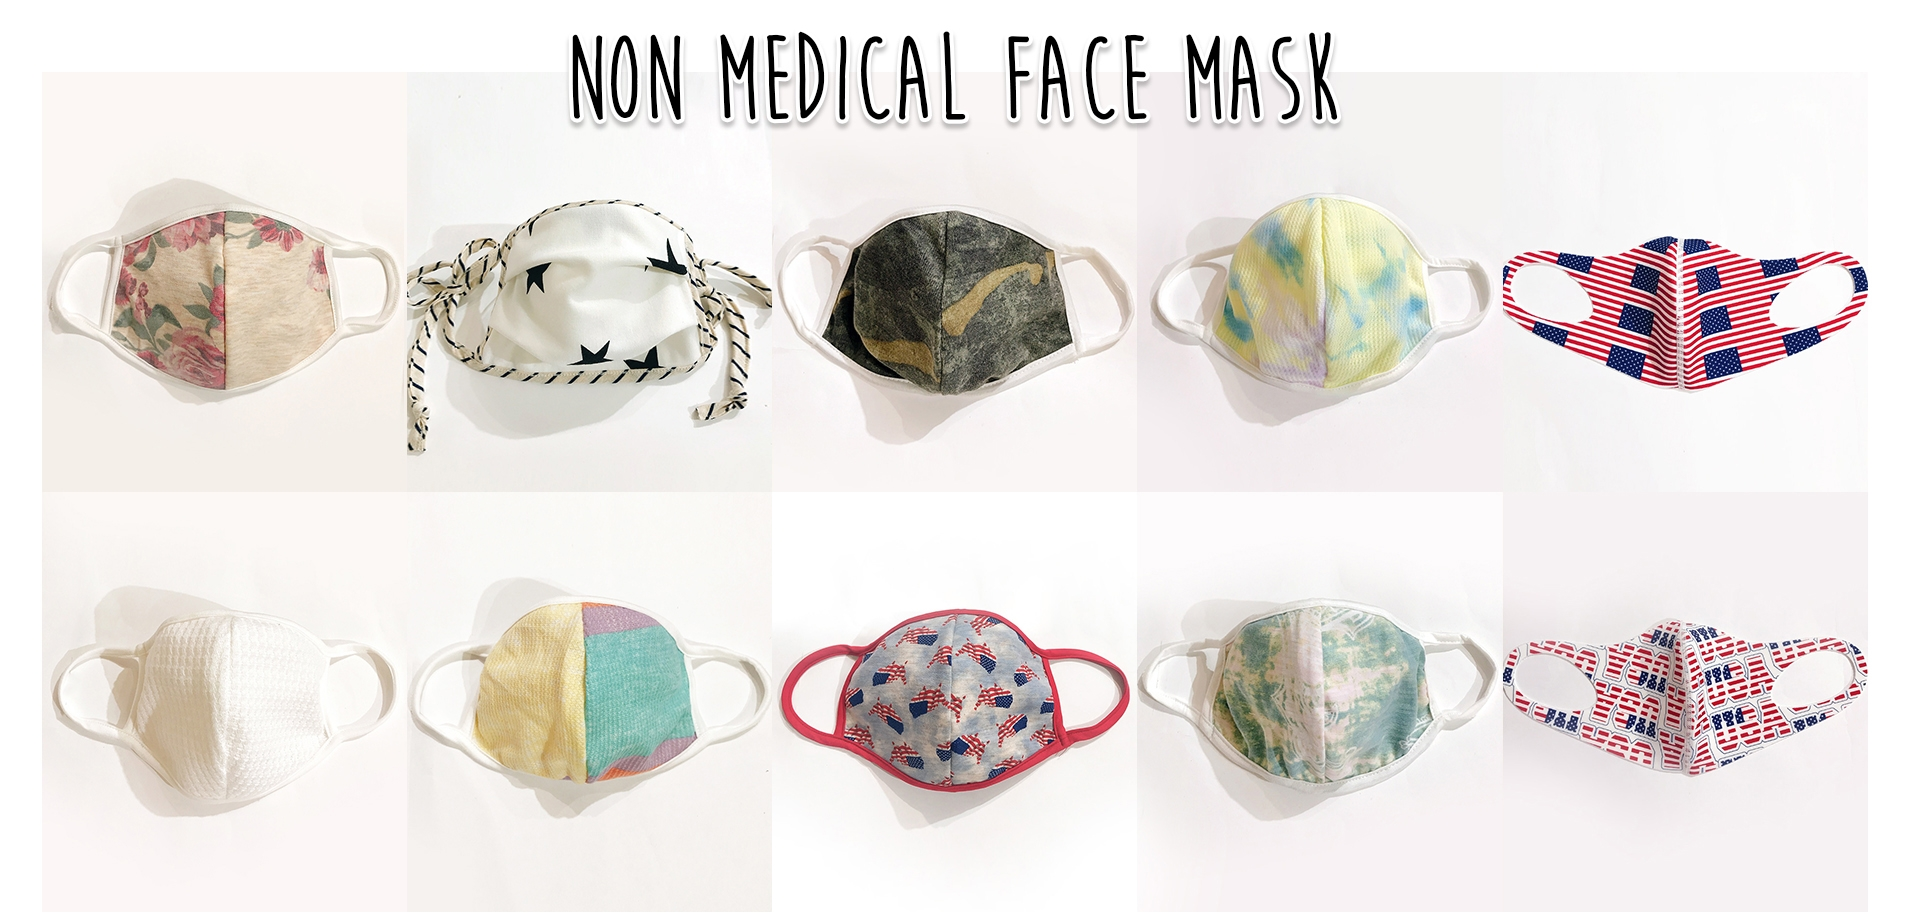 NON MEDICAL FACE MASK